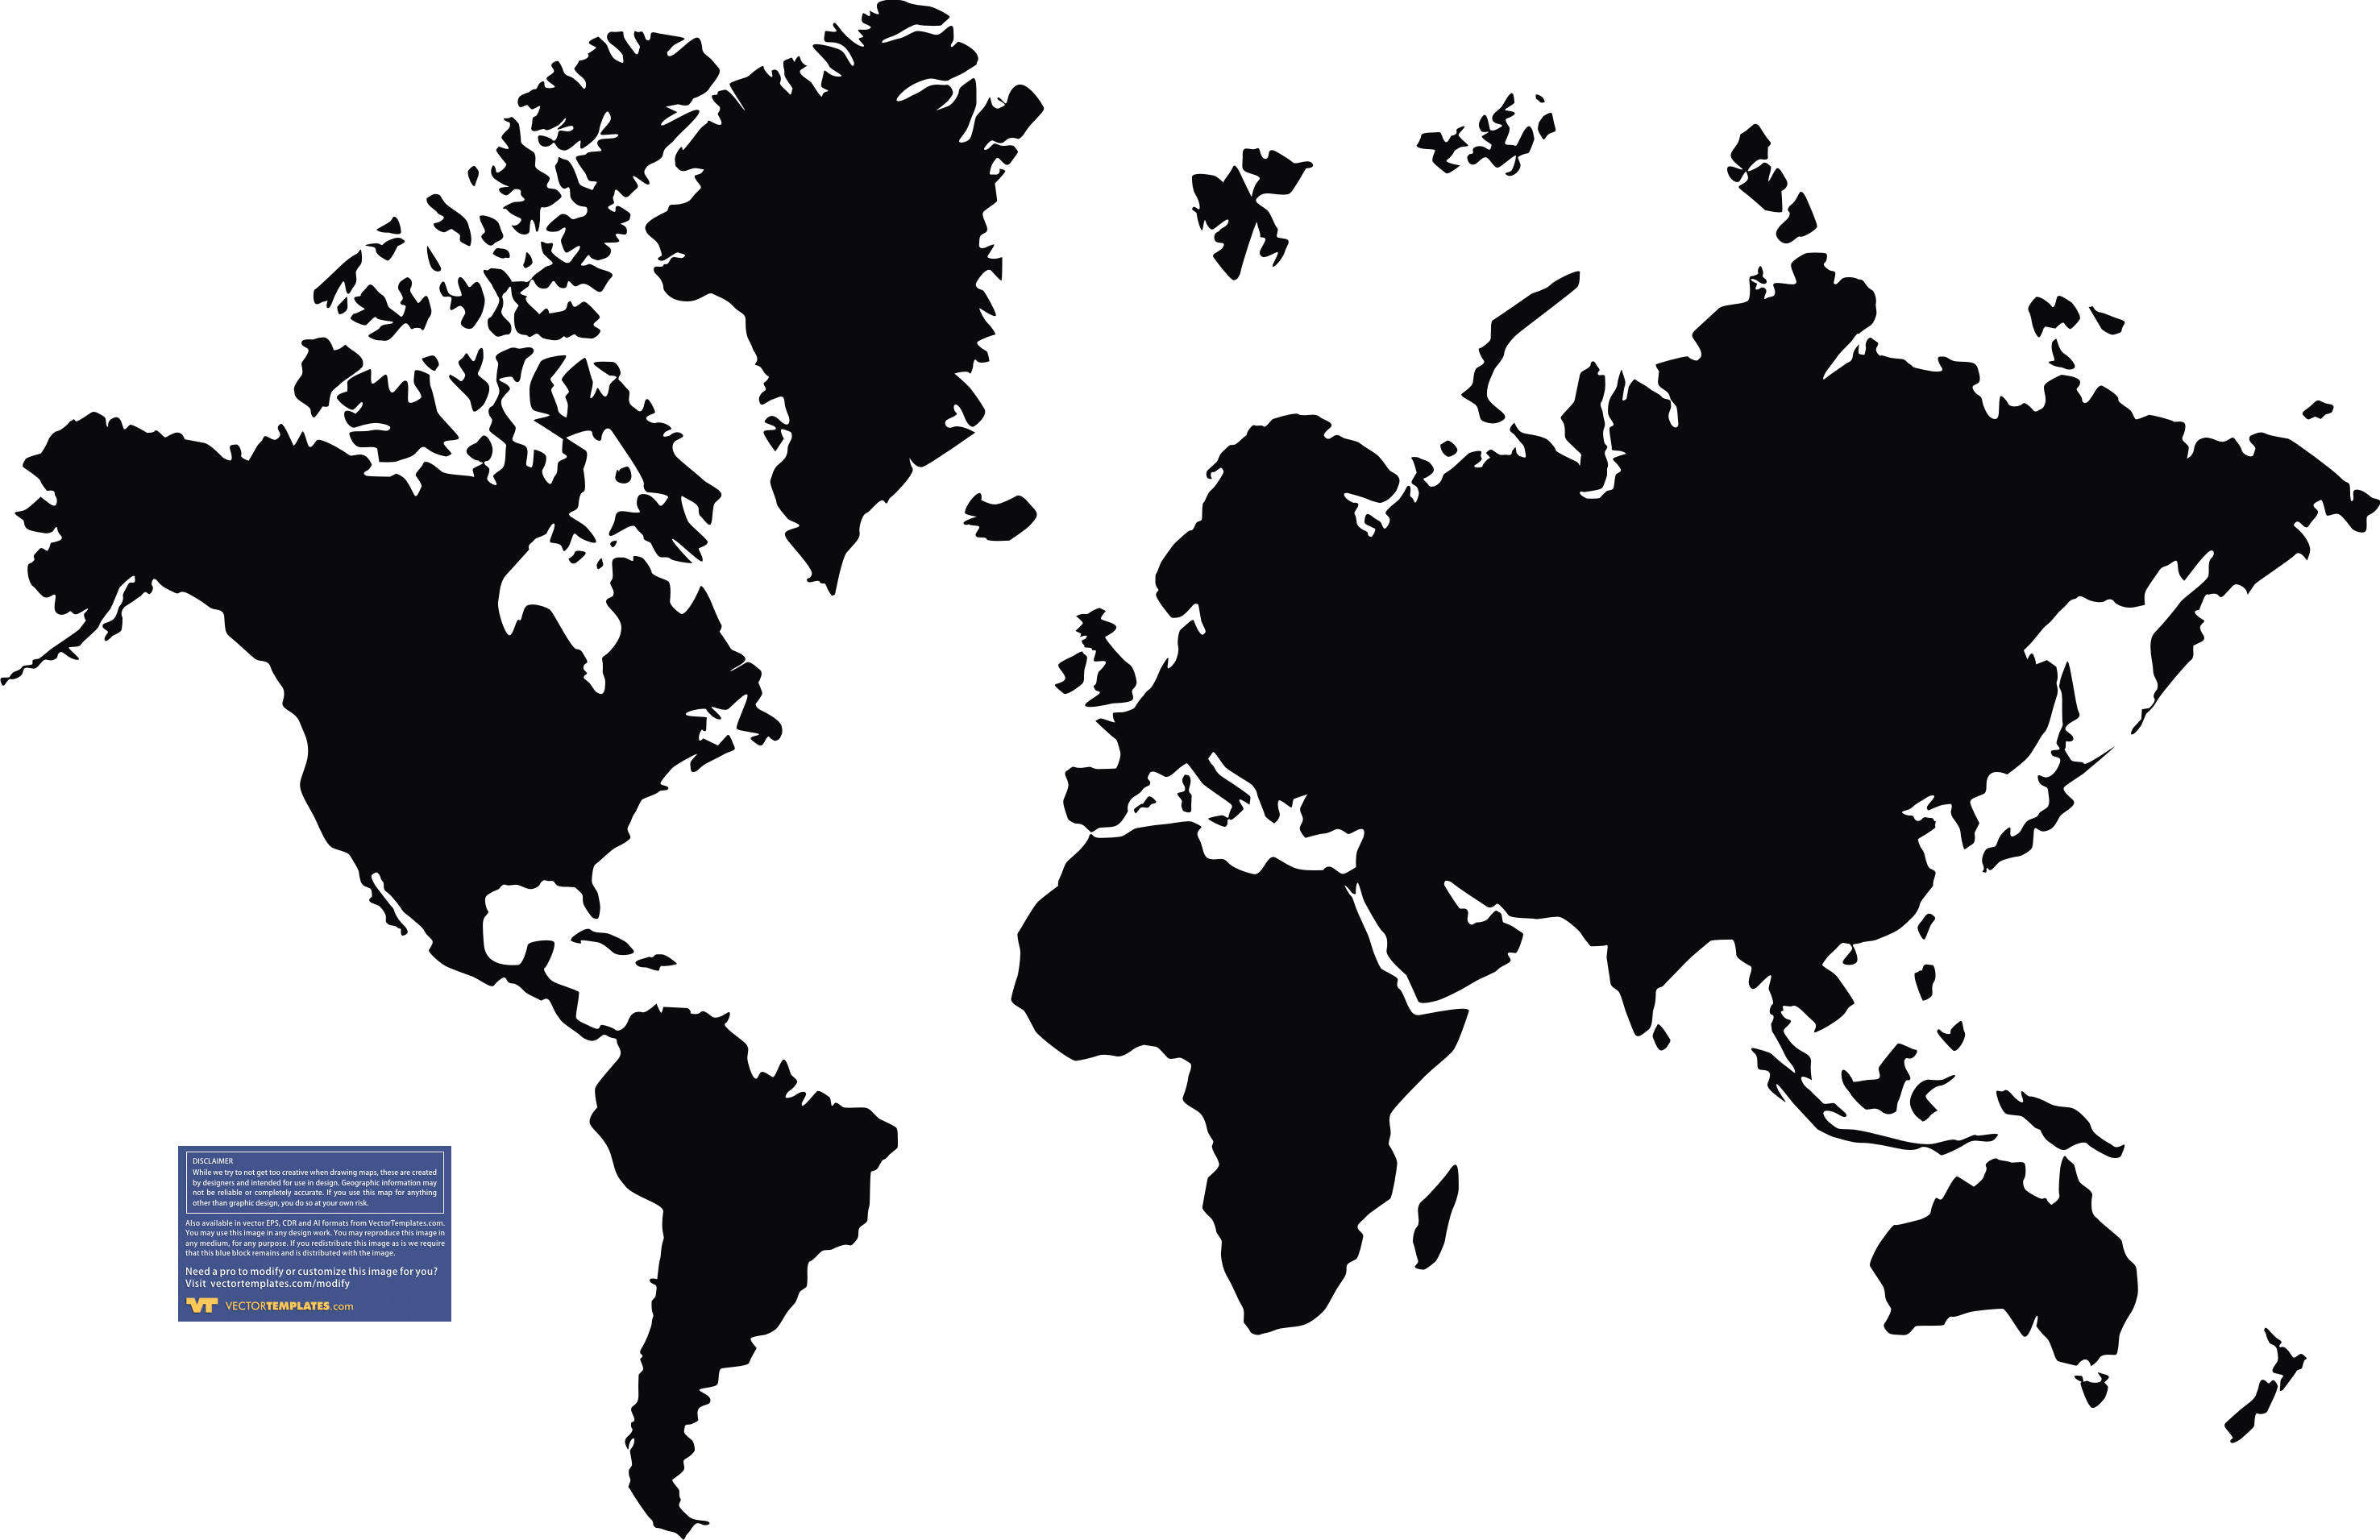 World map black and white with continents hd images 3 hd wallpapers world map black and white with continents hd images 3 hd wallpapers gumiabroncs Image collections